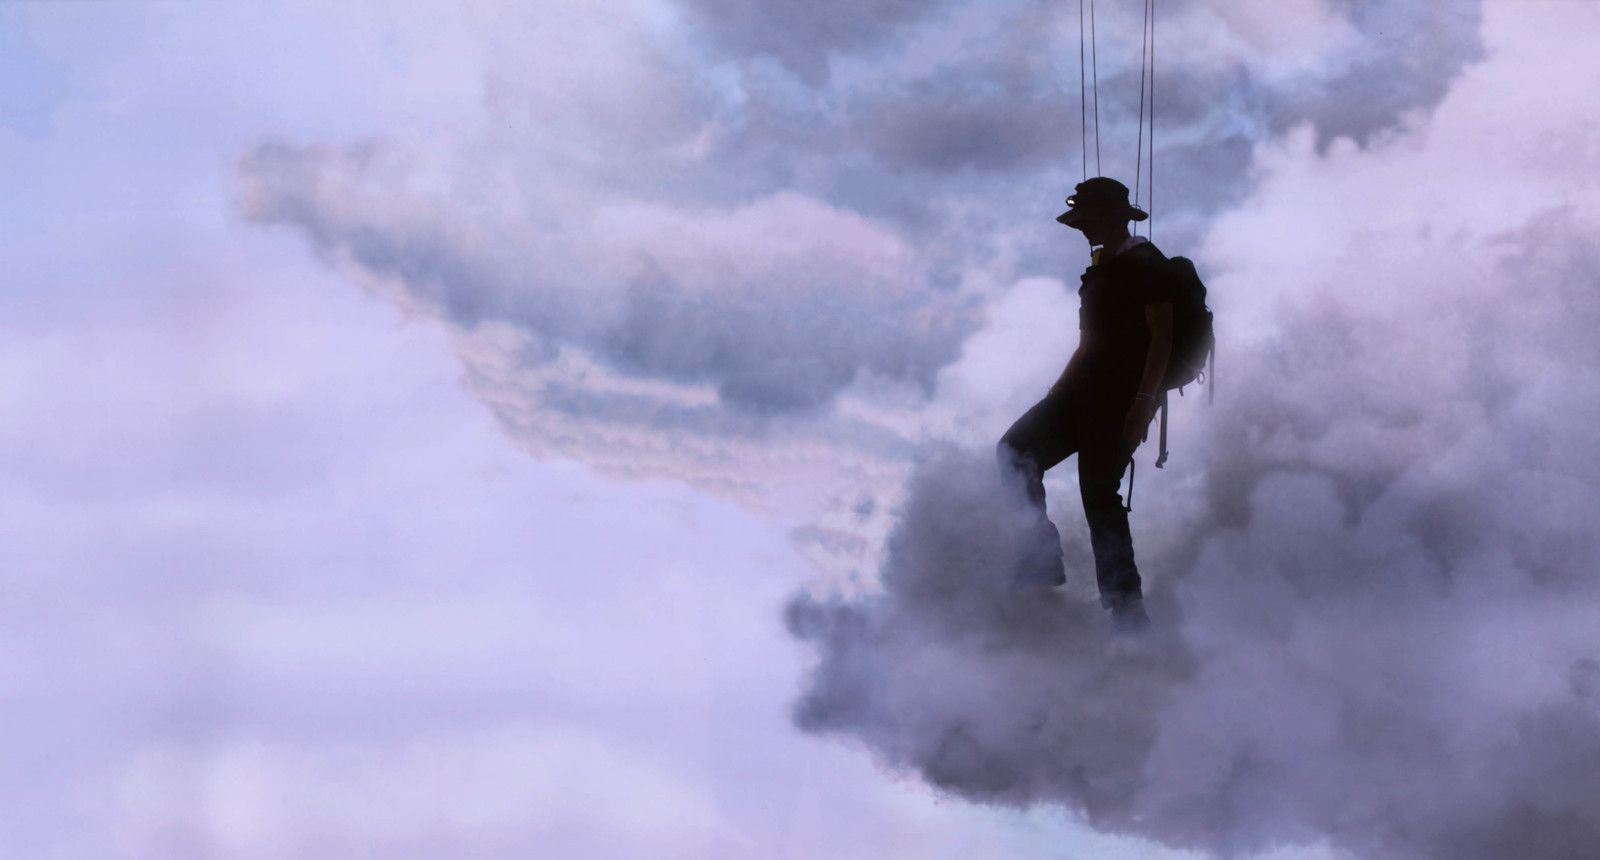 """Walk on clouds"", 2020 de Abraham POINCHEVAL - Courtesy de l'artiste et la galerie Semiose © Photo Éric Simon"